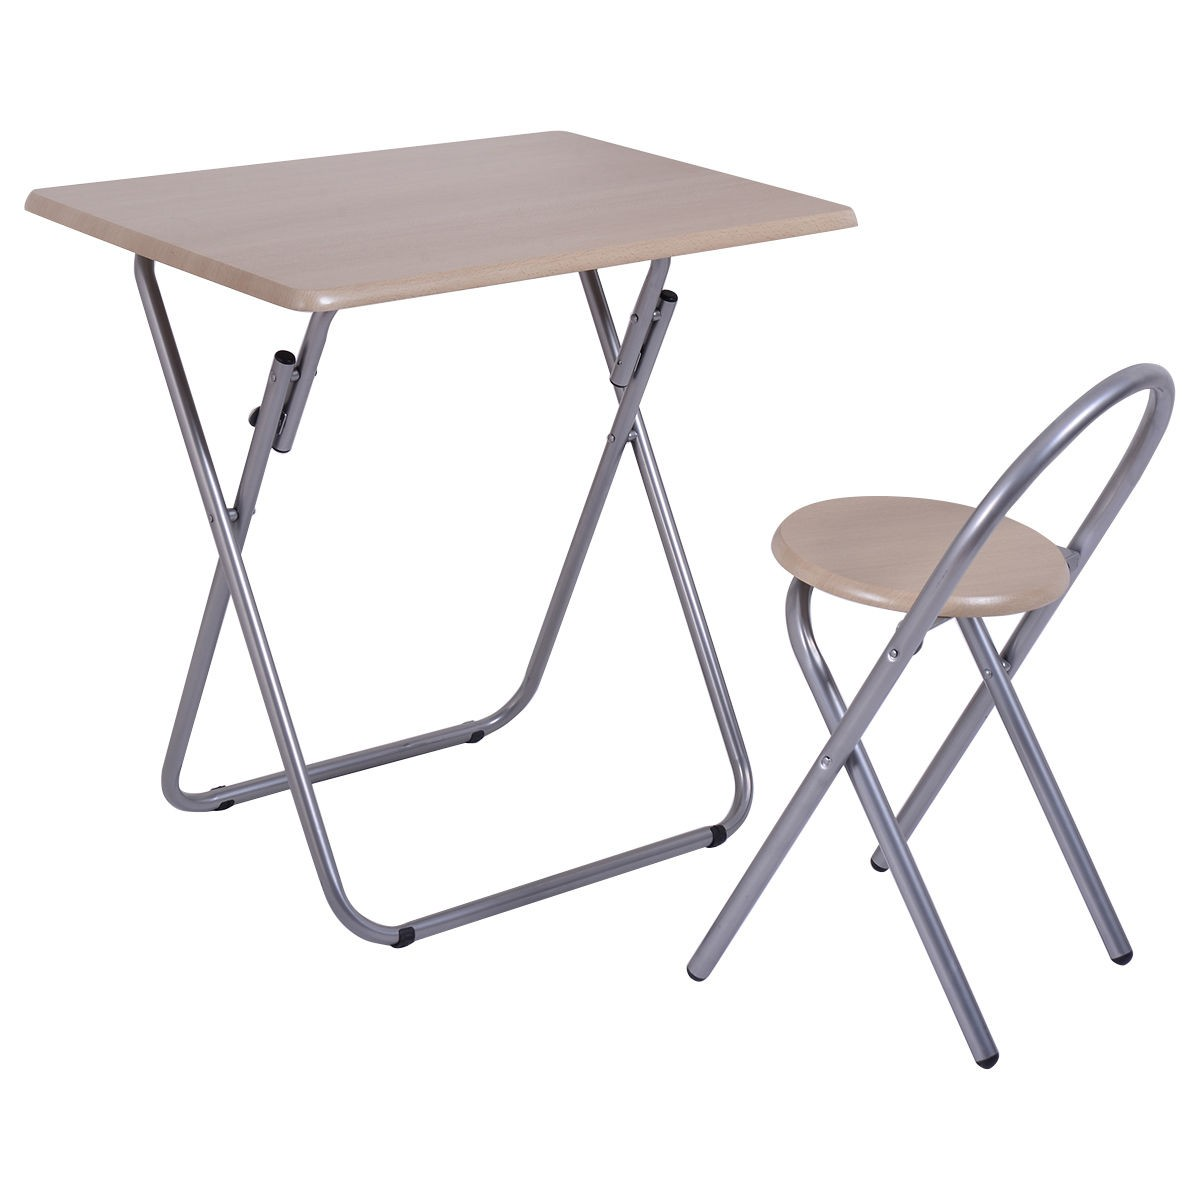 Portable Study Room Writing Desk Table Chair Set Folding